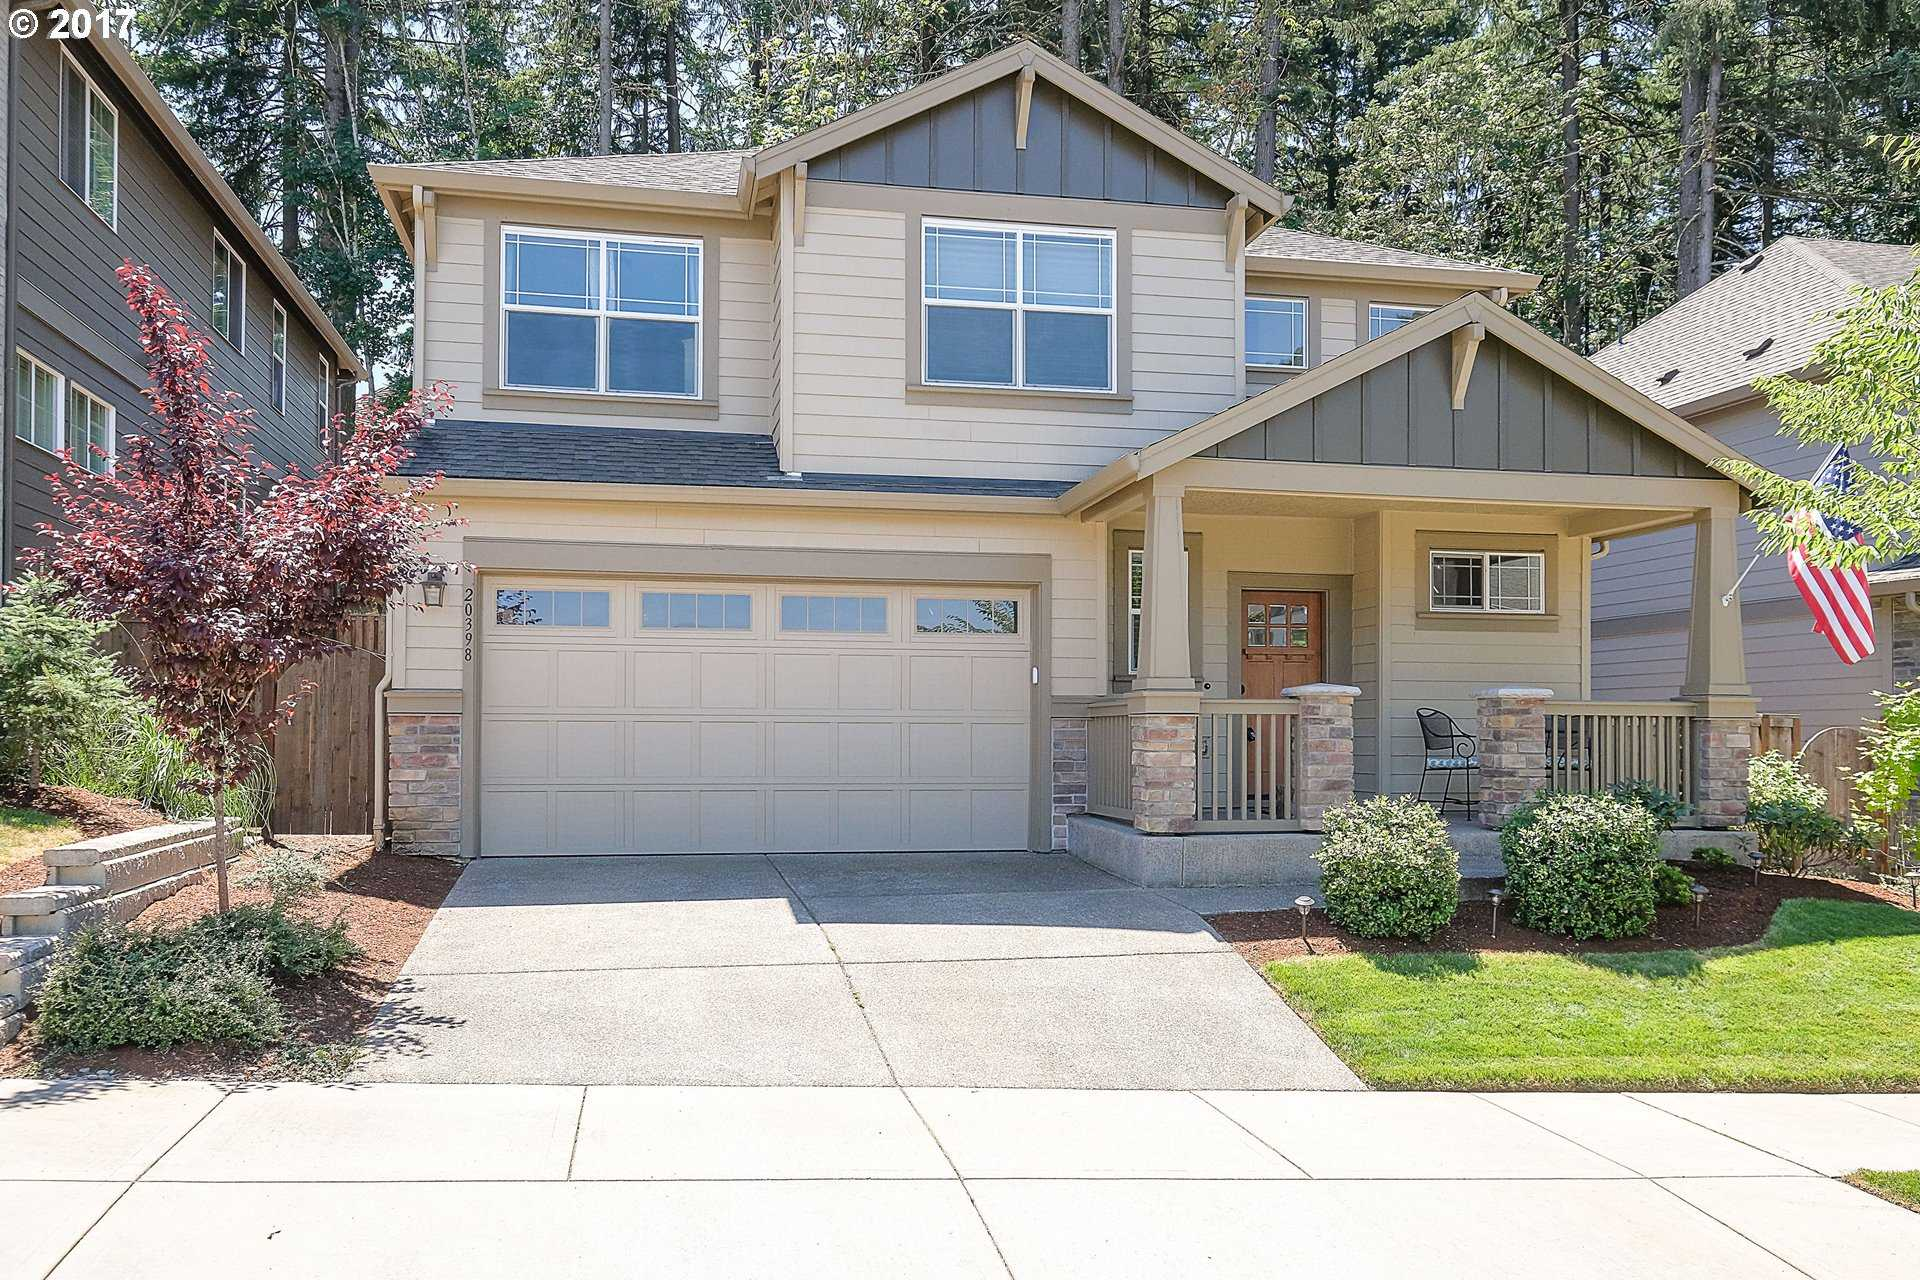 $525,000 - 4Br/3Ba -  for Sale in Twin Creeks At Cooper Mountain, Beaverton